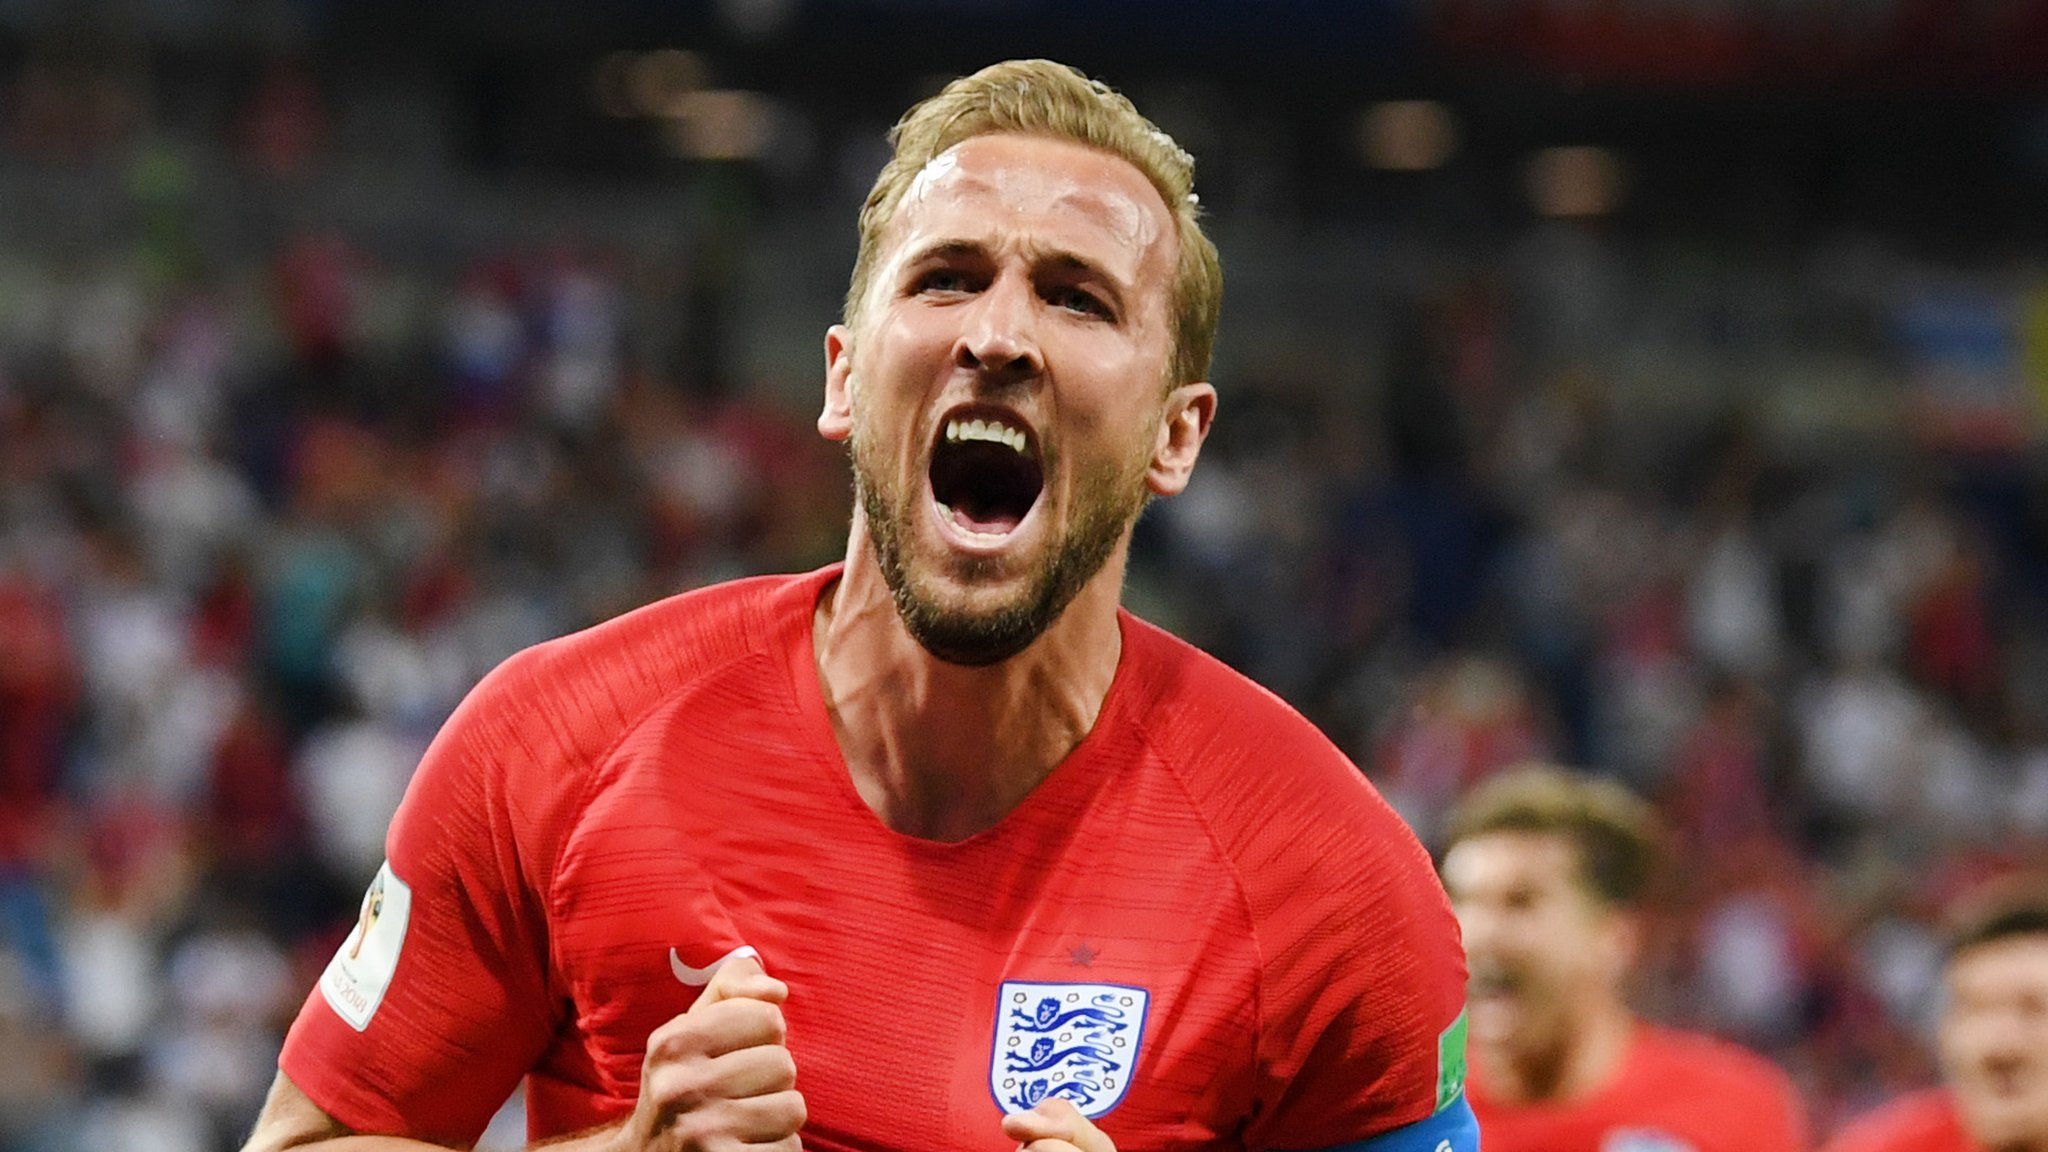 Watch: Kane heads last-gasp England winner